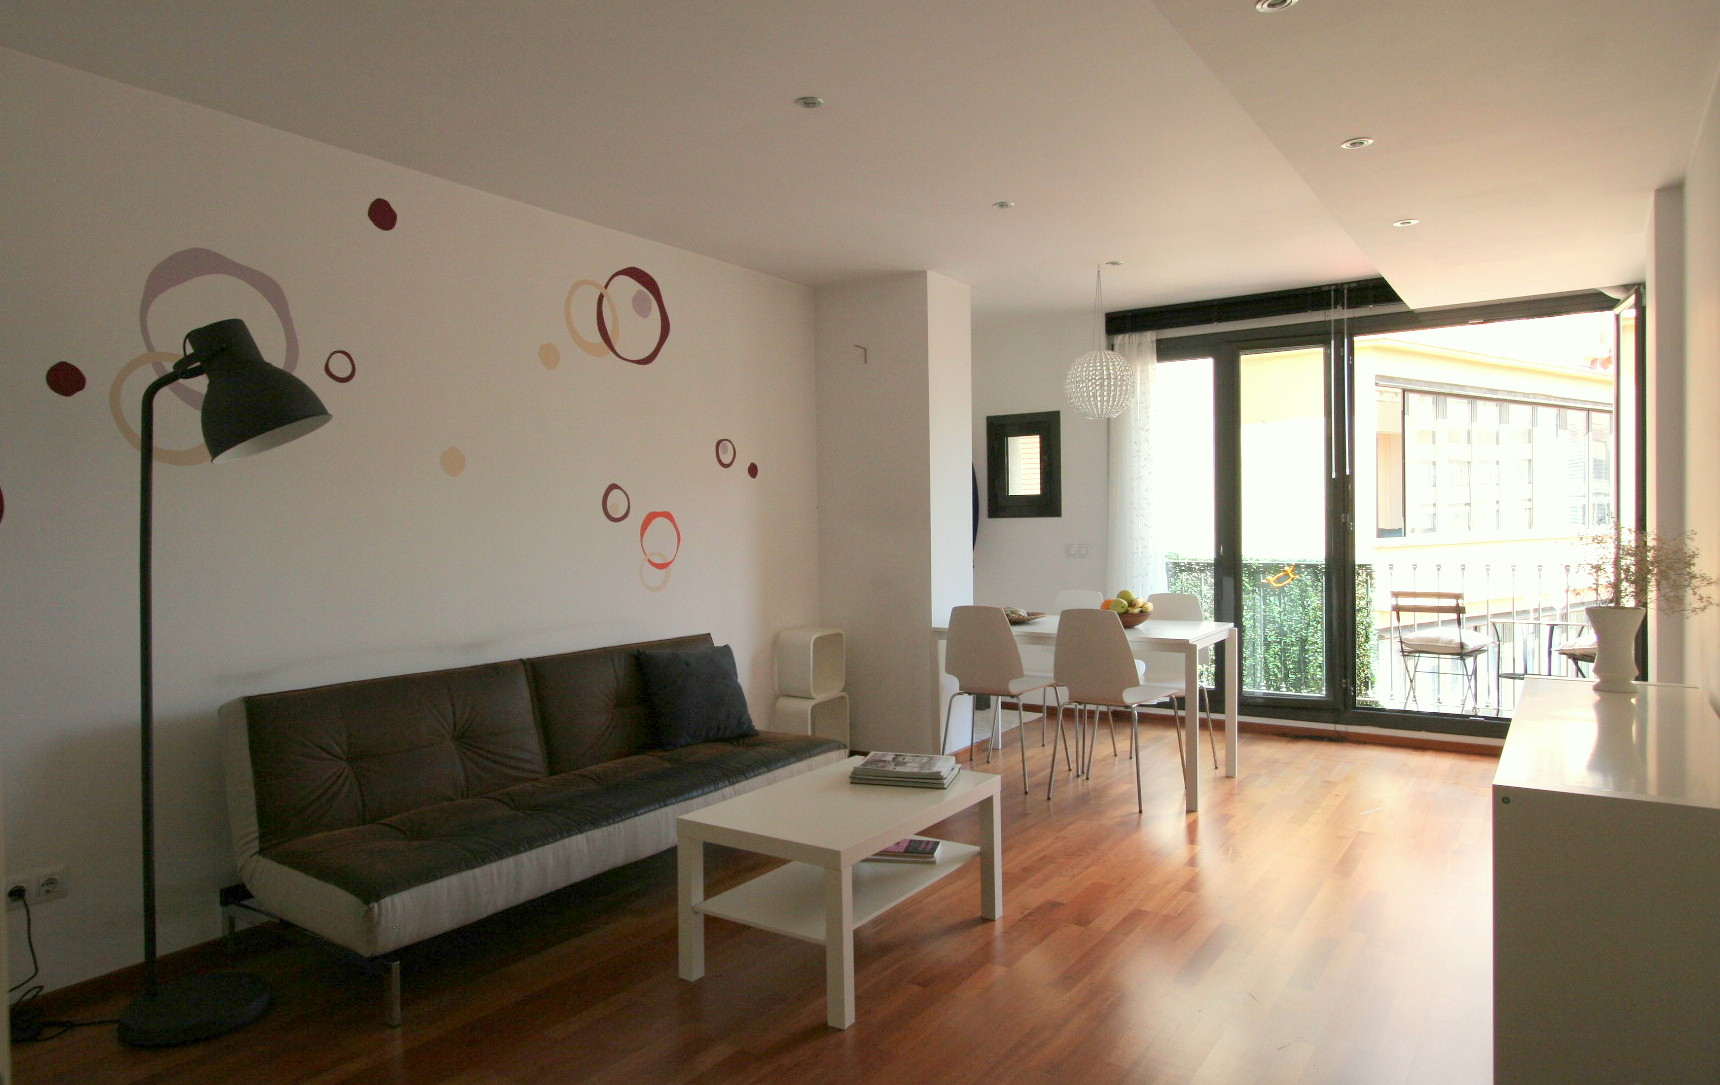 Easyapartmentrental charming 2 bedroom apartment near for 1 bedroom apartment for rent